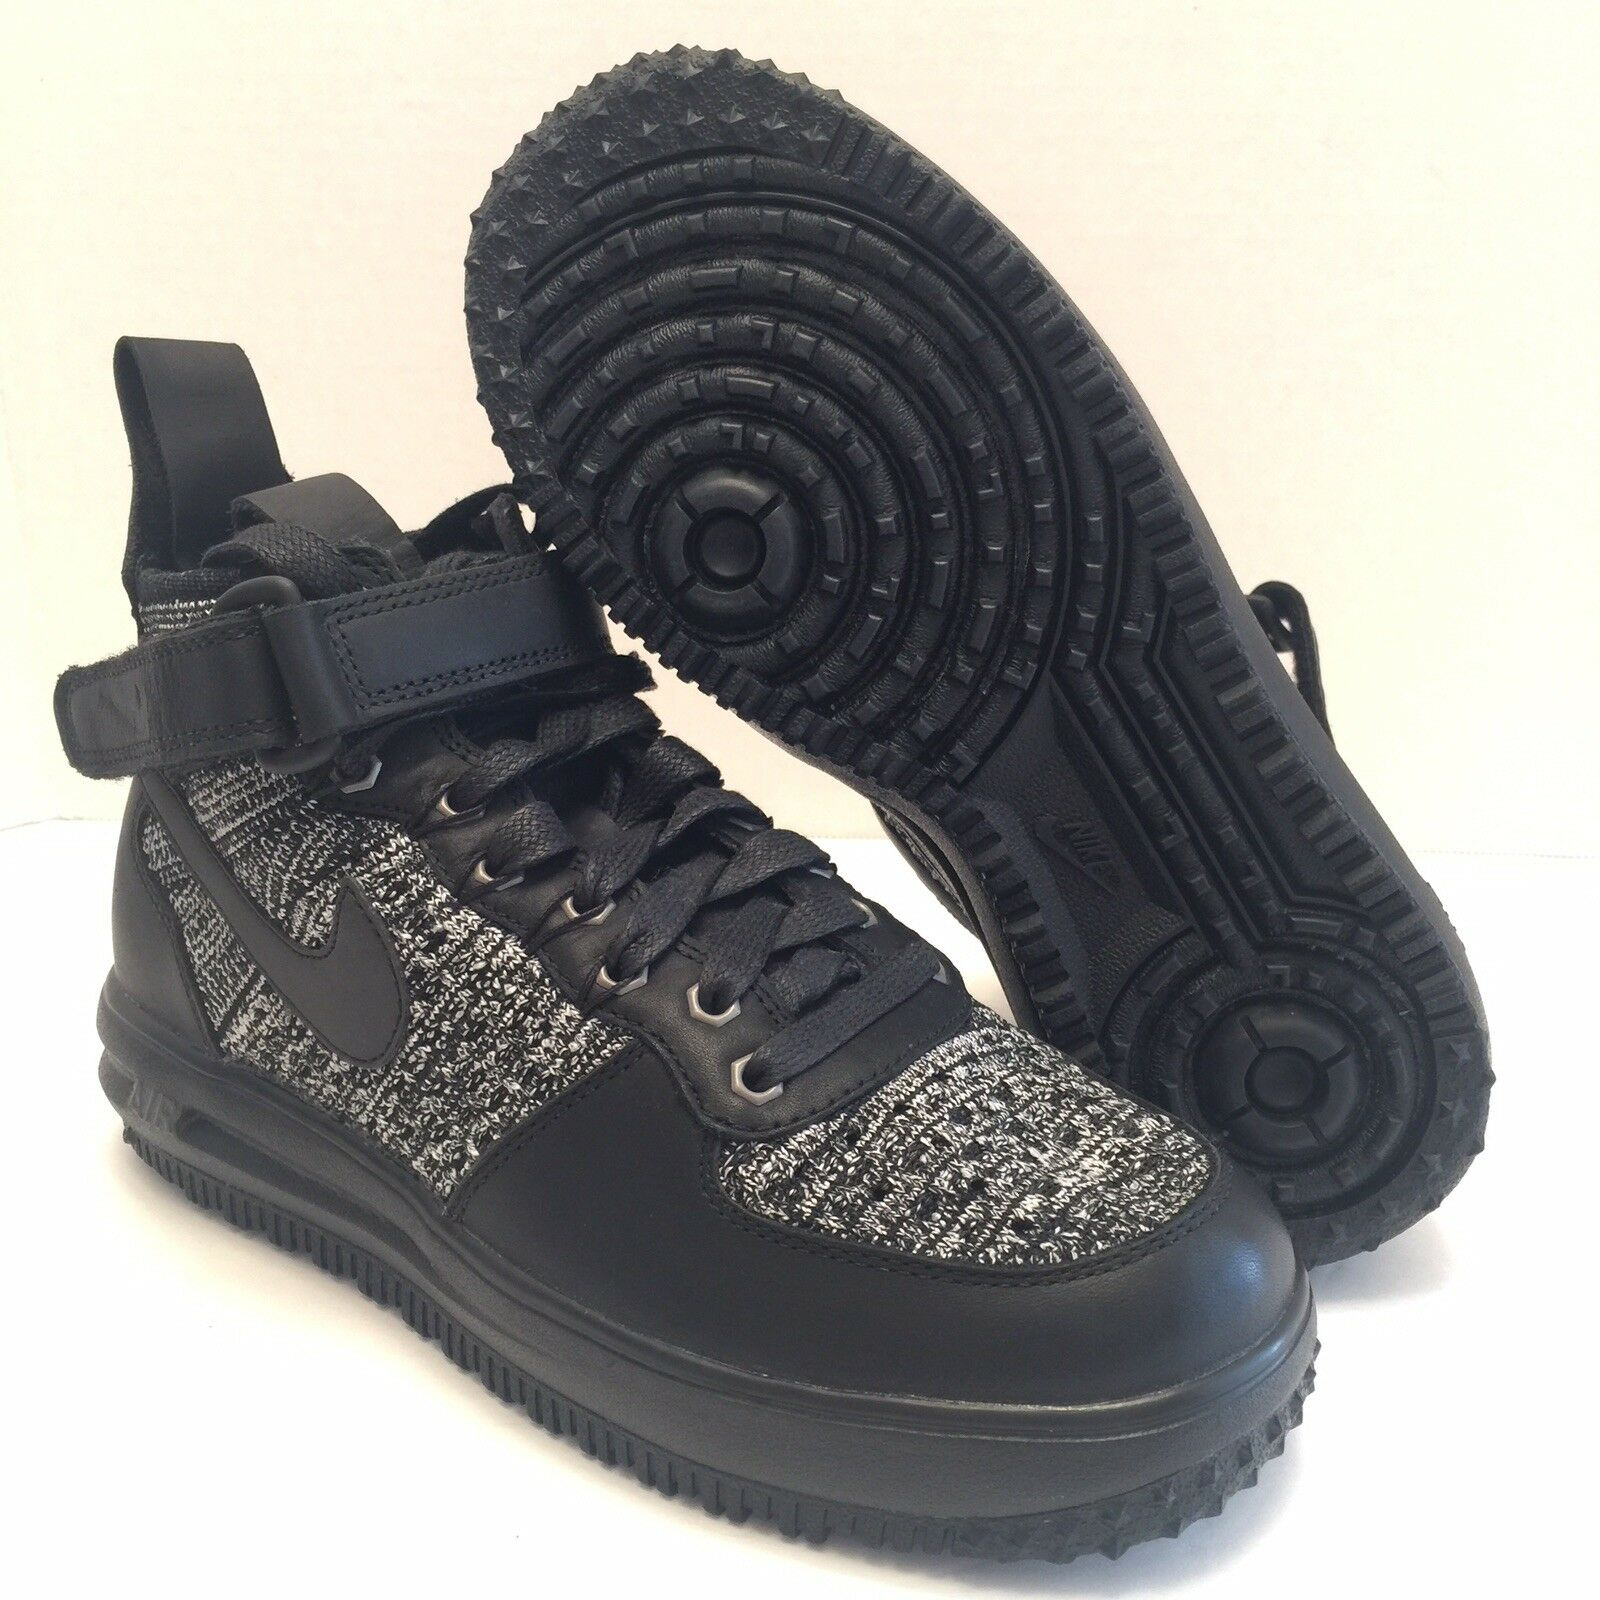 68b387cb24 Nike LF1 Air Lunar Flyknit 860558-001 Black White Mens WorkBoots size 6  Force nuggkj3580-new shoes